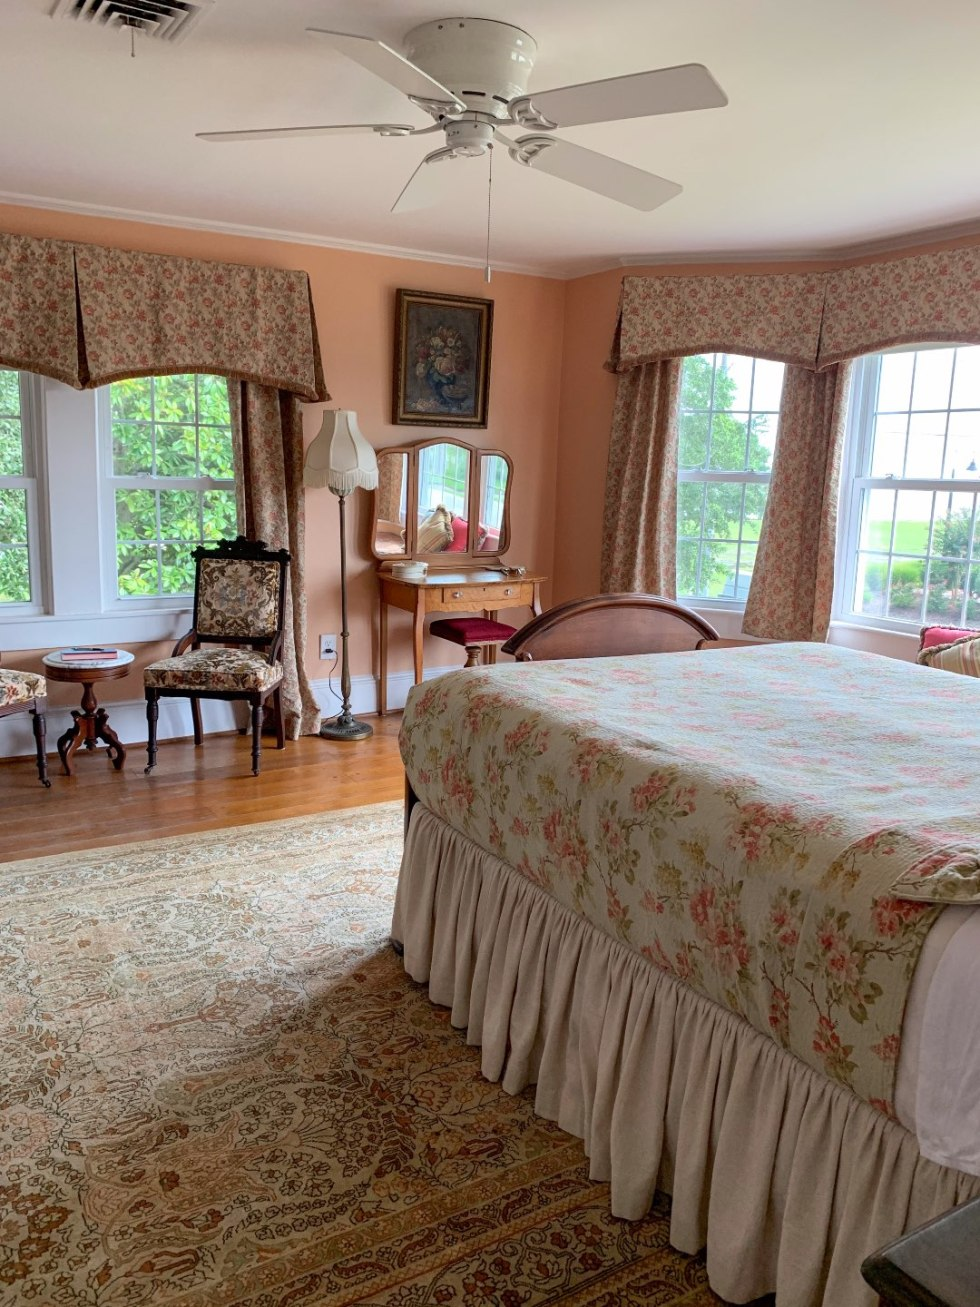 North Carolina Favorite: Between Water and Main Bed & Breakfast in Belhaven - I'm Fixin' To - @mbg0112 | North Carolina Favorite: Between Water and Main Bed & Breakfast in Belhaven by popular North Carolina Blogger, I'm Fixin' To: image of a peach and pink hued bedroom at Between Water and Main Bed and Breakfast.